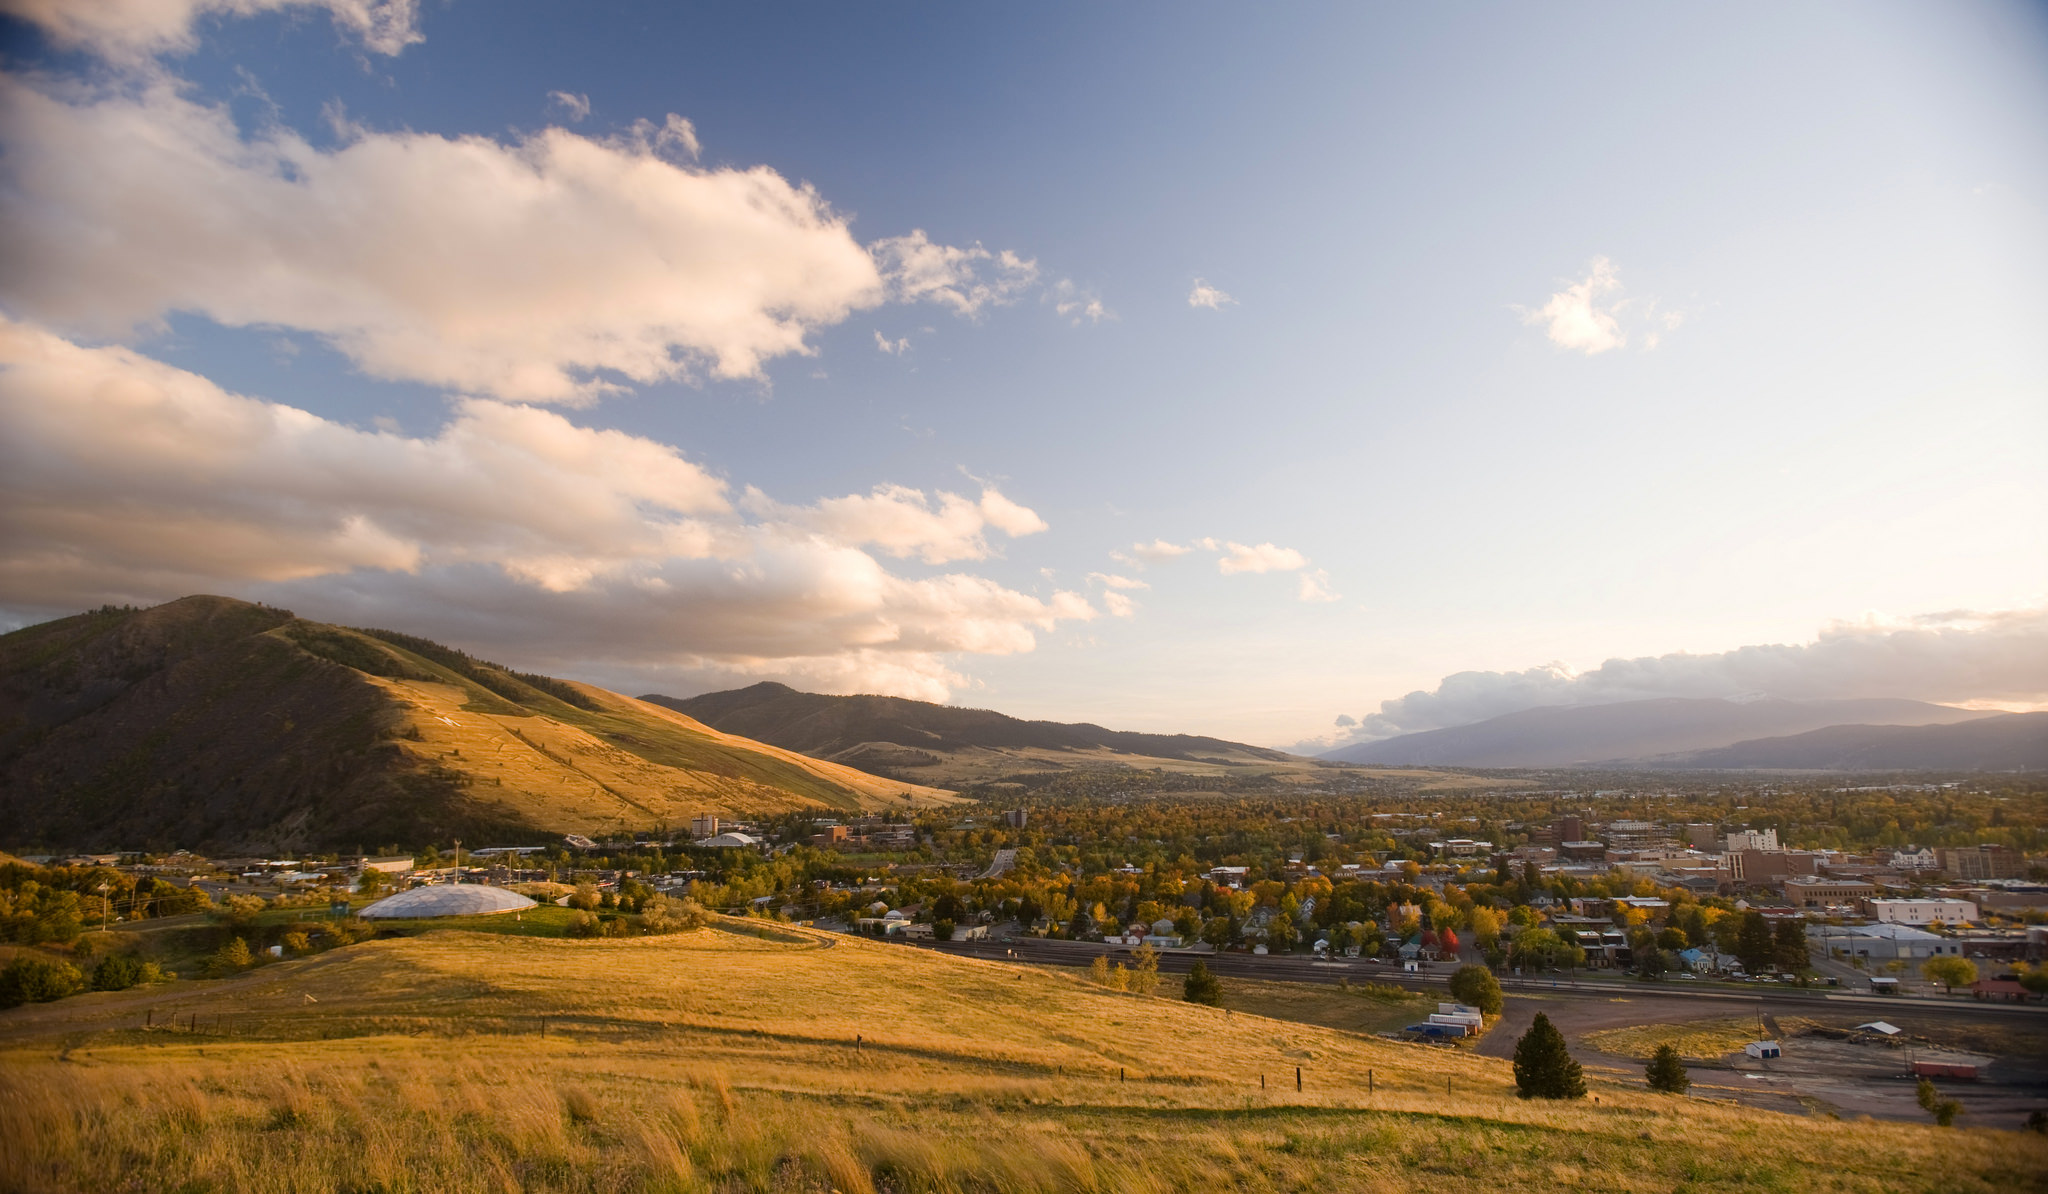 Missoula, MT is home to the University of Montana and the Montana World Trade Center.